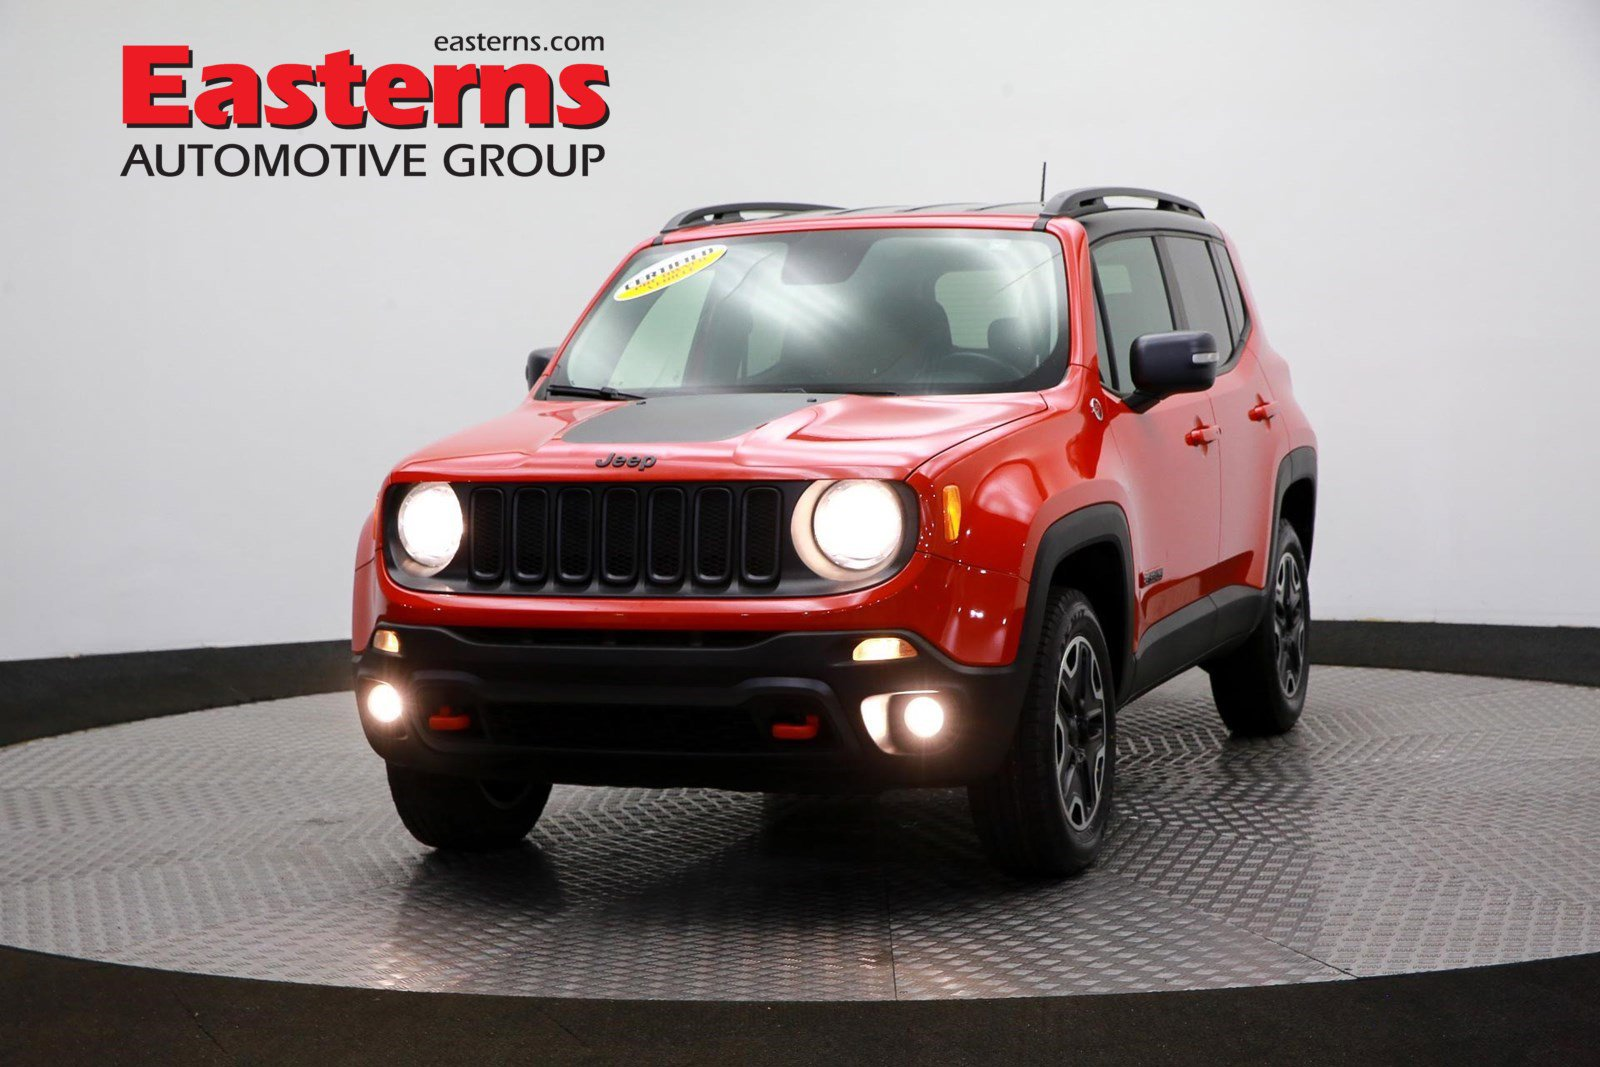 2016 Jeep Renegade 4WD Trailhawk image